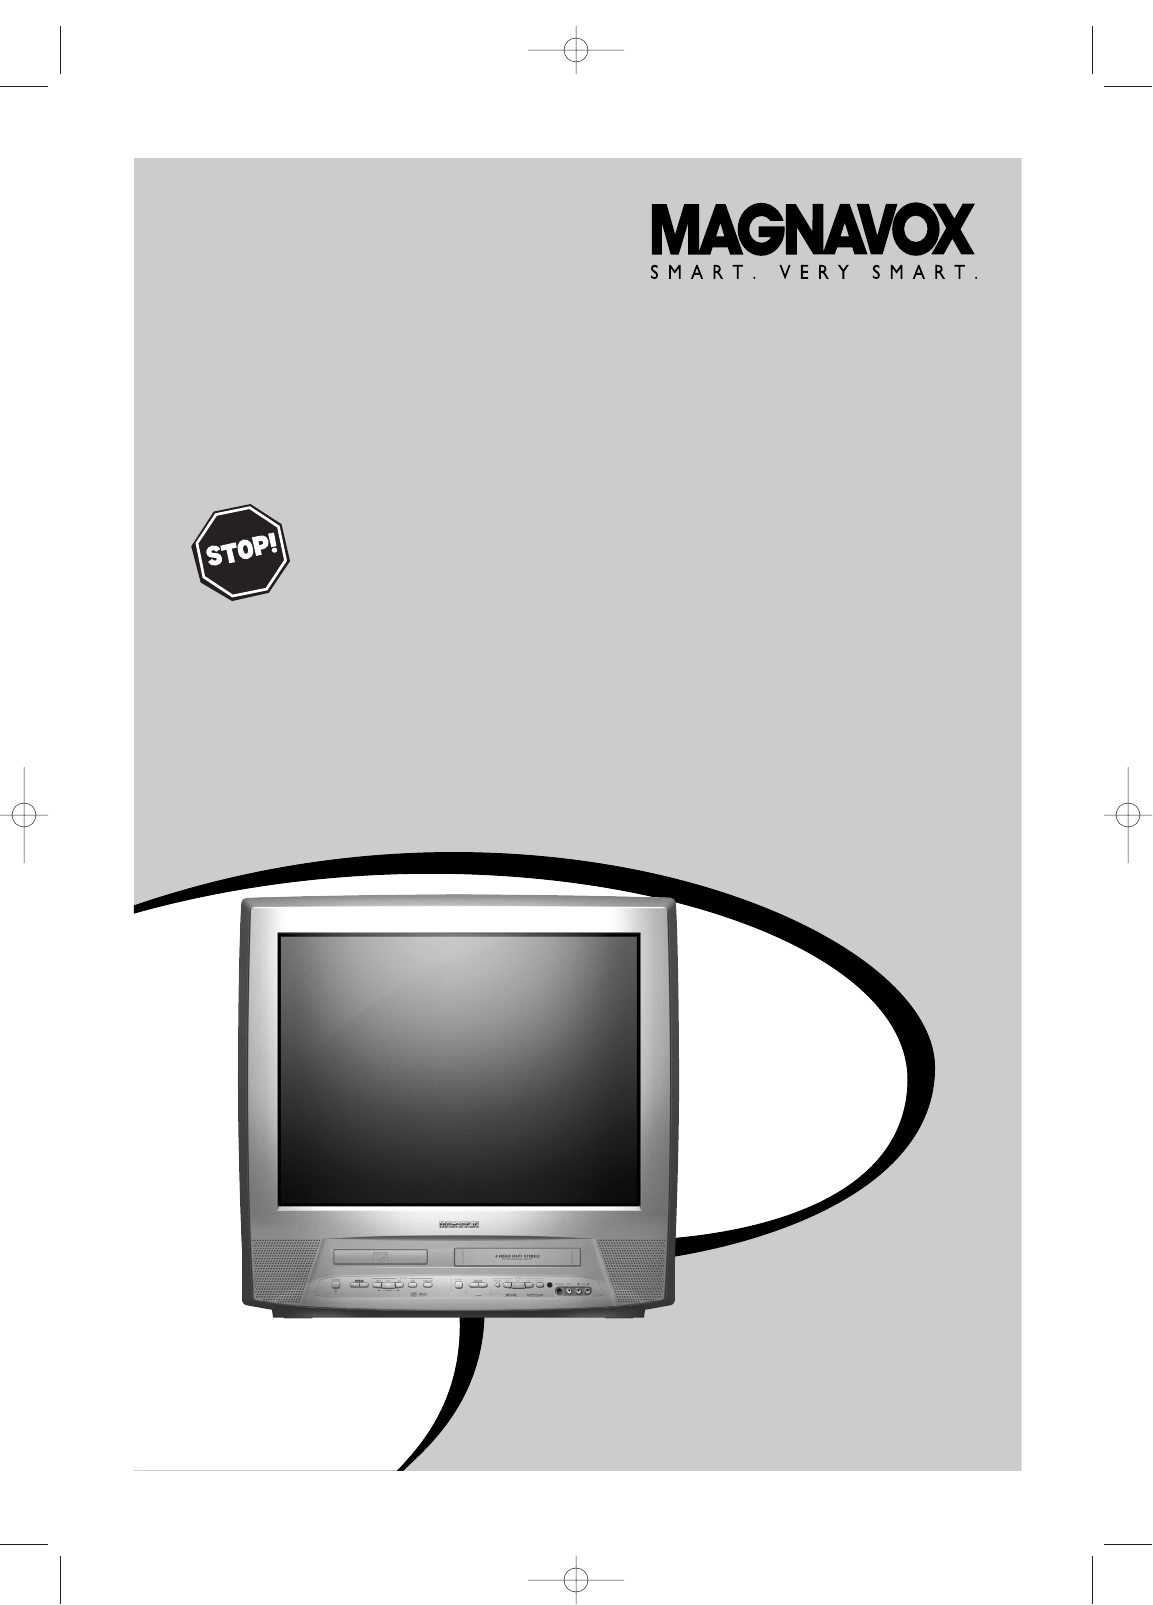 magnavox television manual open source user manual u2022 rh dramatic varieties com TV DVD VCR Combo Walmart 27 TV DVD VCR Combo